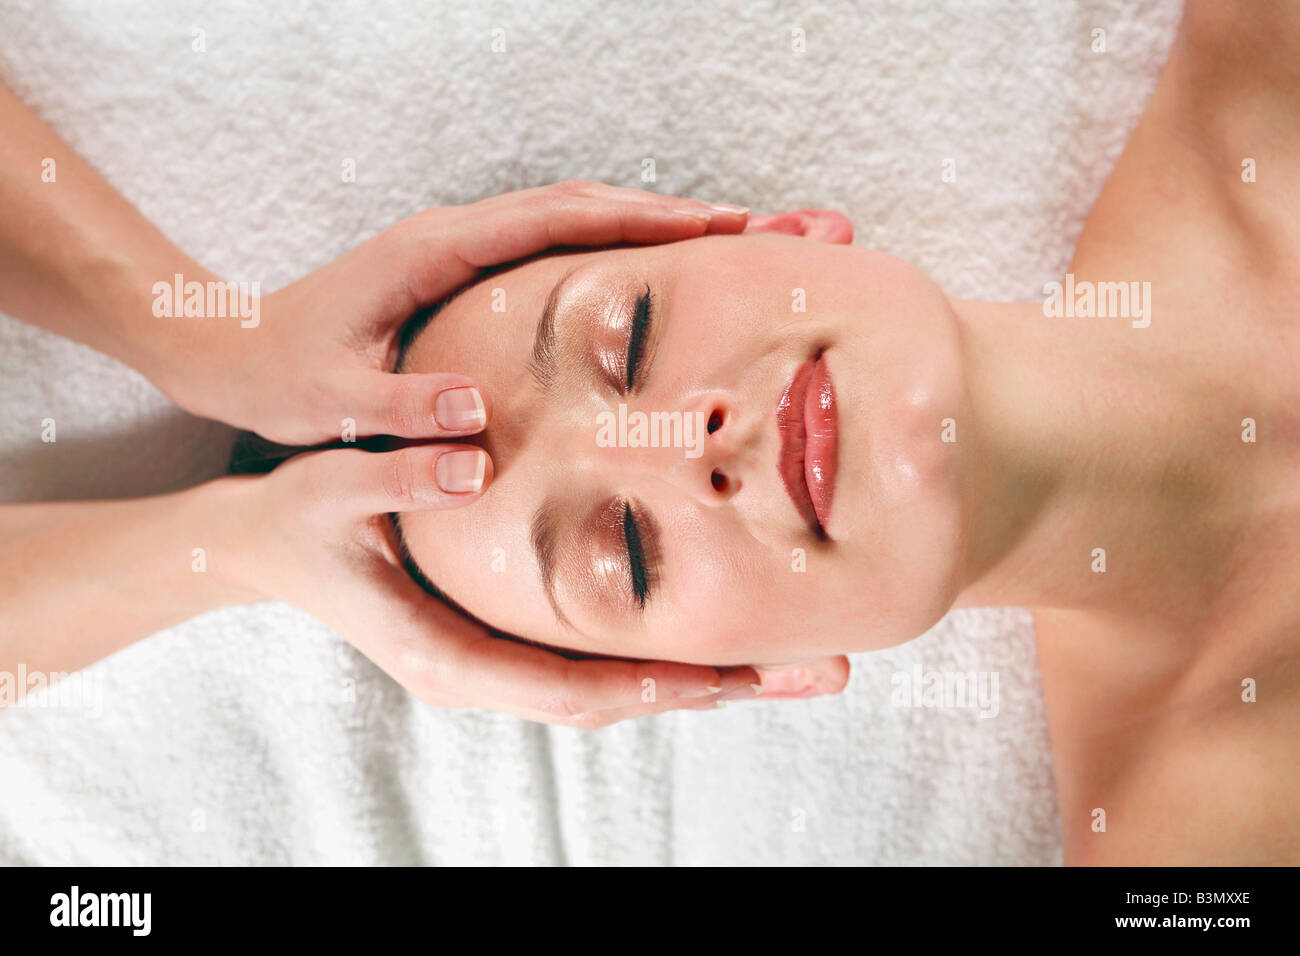 Young woman receiving facial massage, eyes closed, elevated view Stock Photo